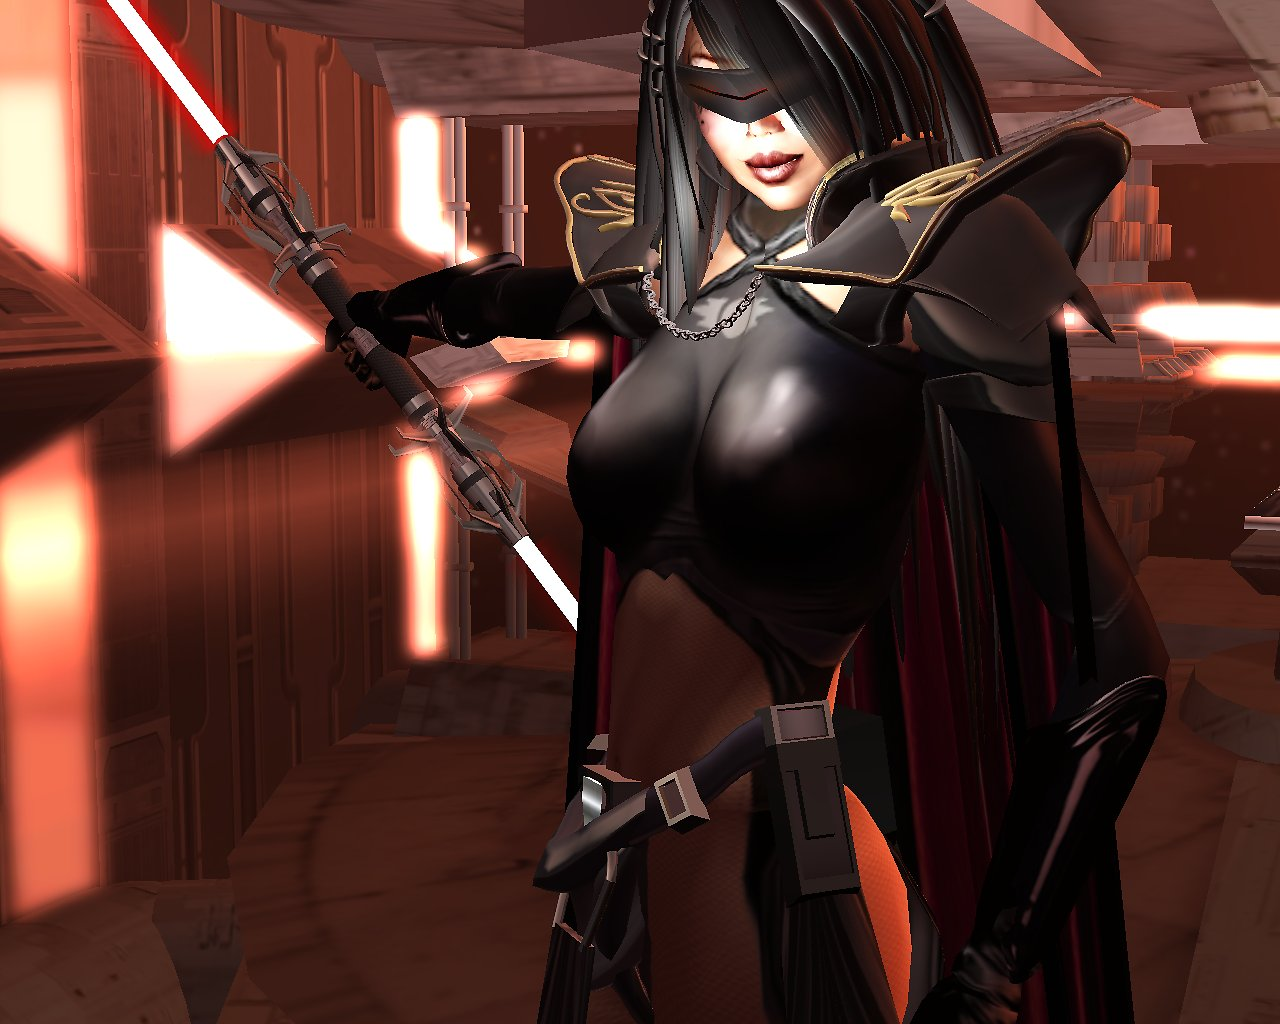 Female sith porn sexual gallery